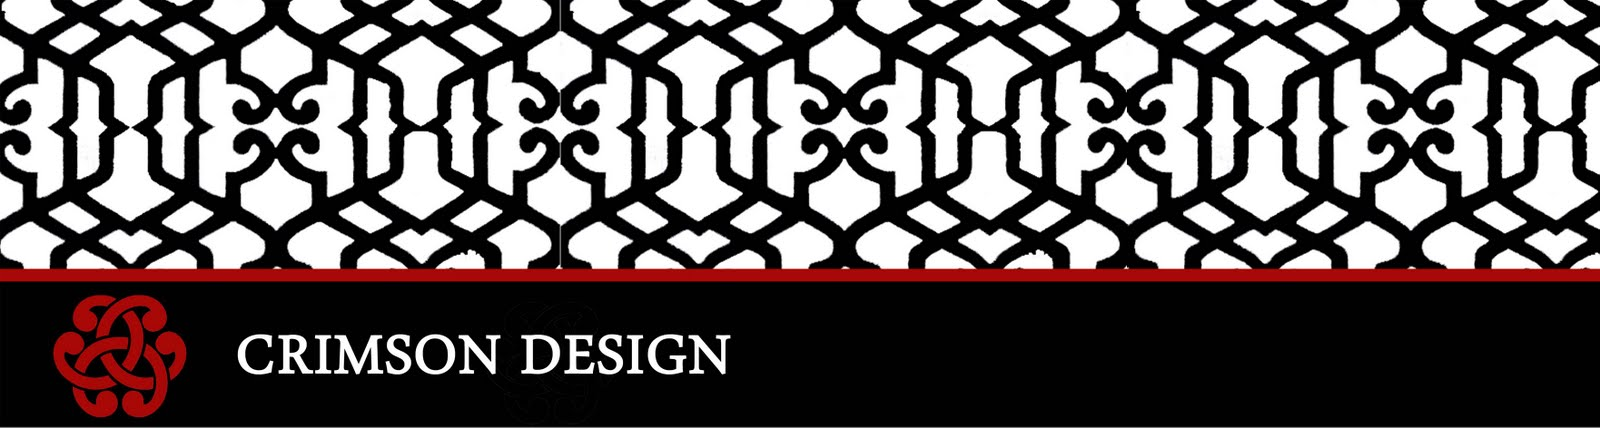 Crimson Design